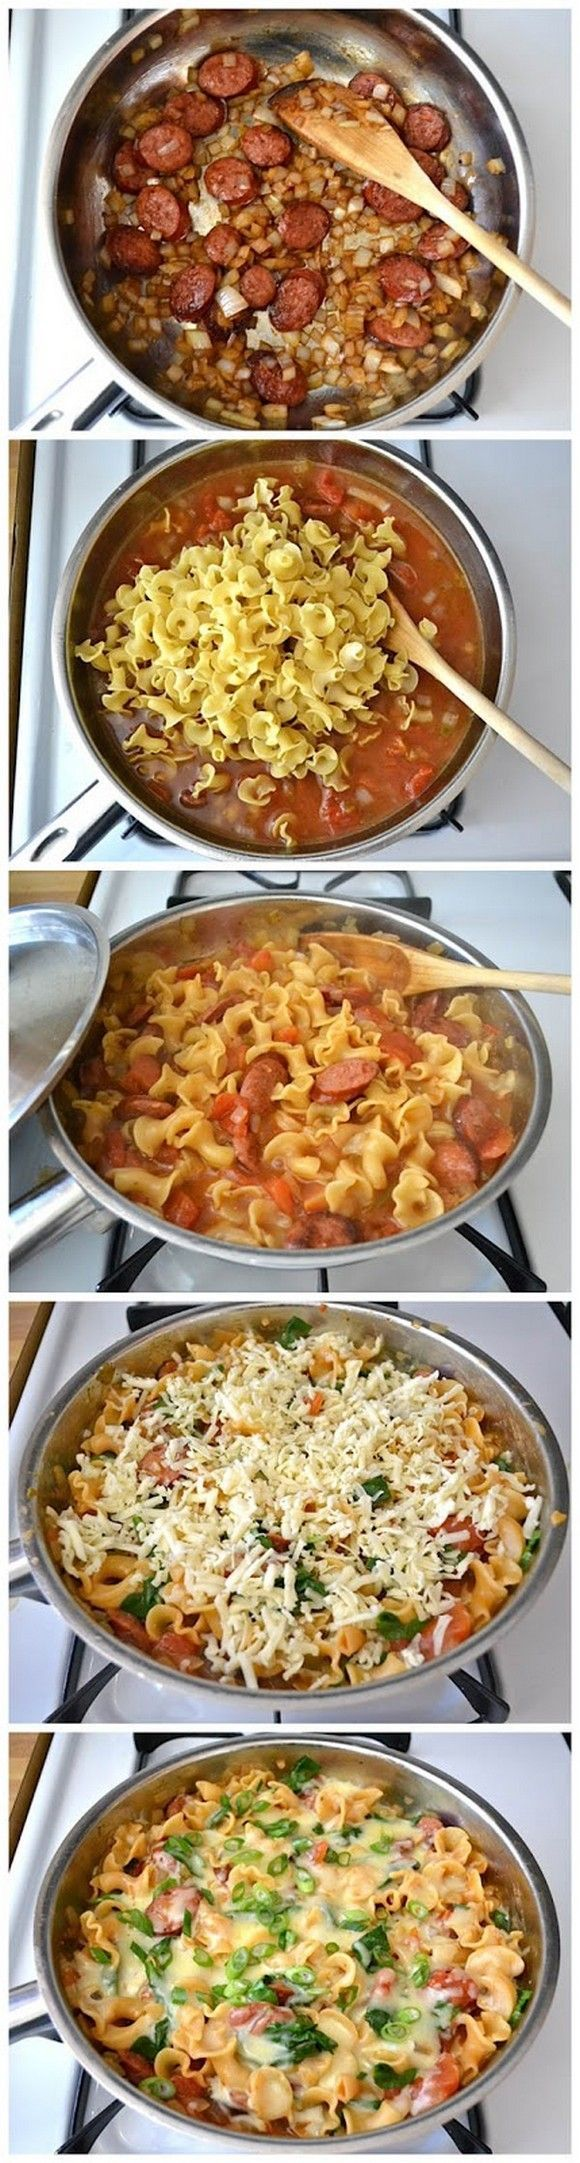 Best Pasta Recipes on the Net (August 2013 Edition): Creamy Spinach Sausage Pasta recipe